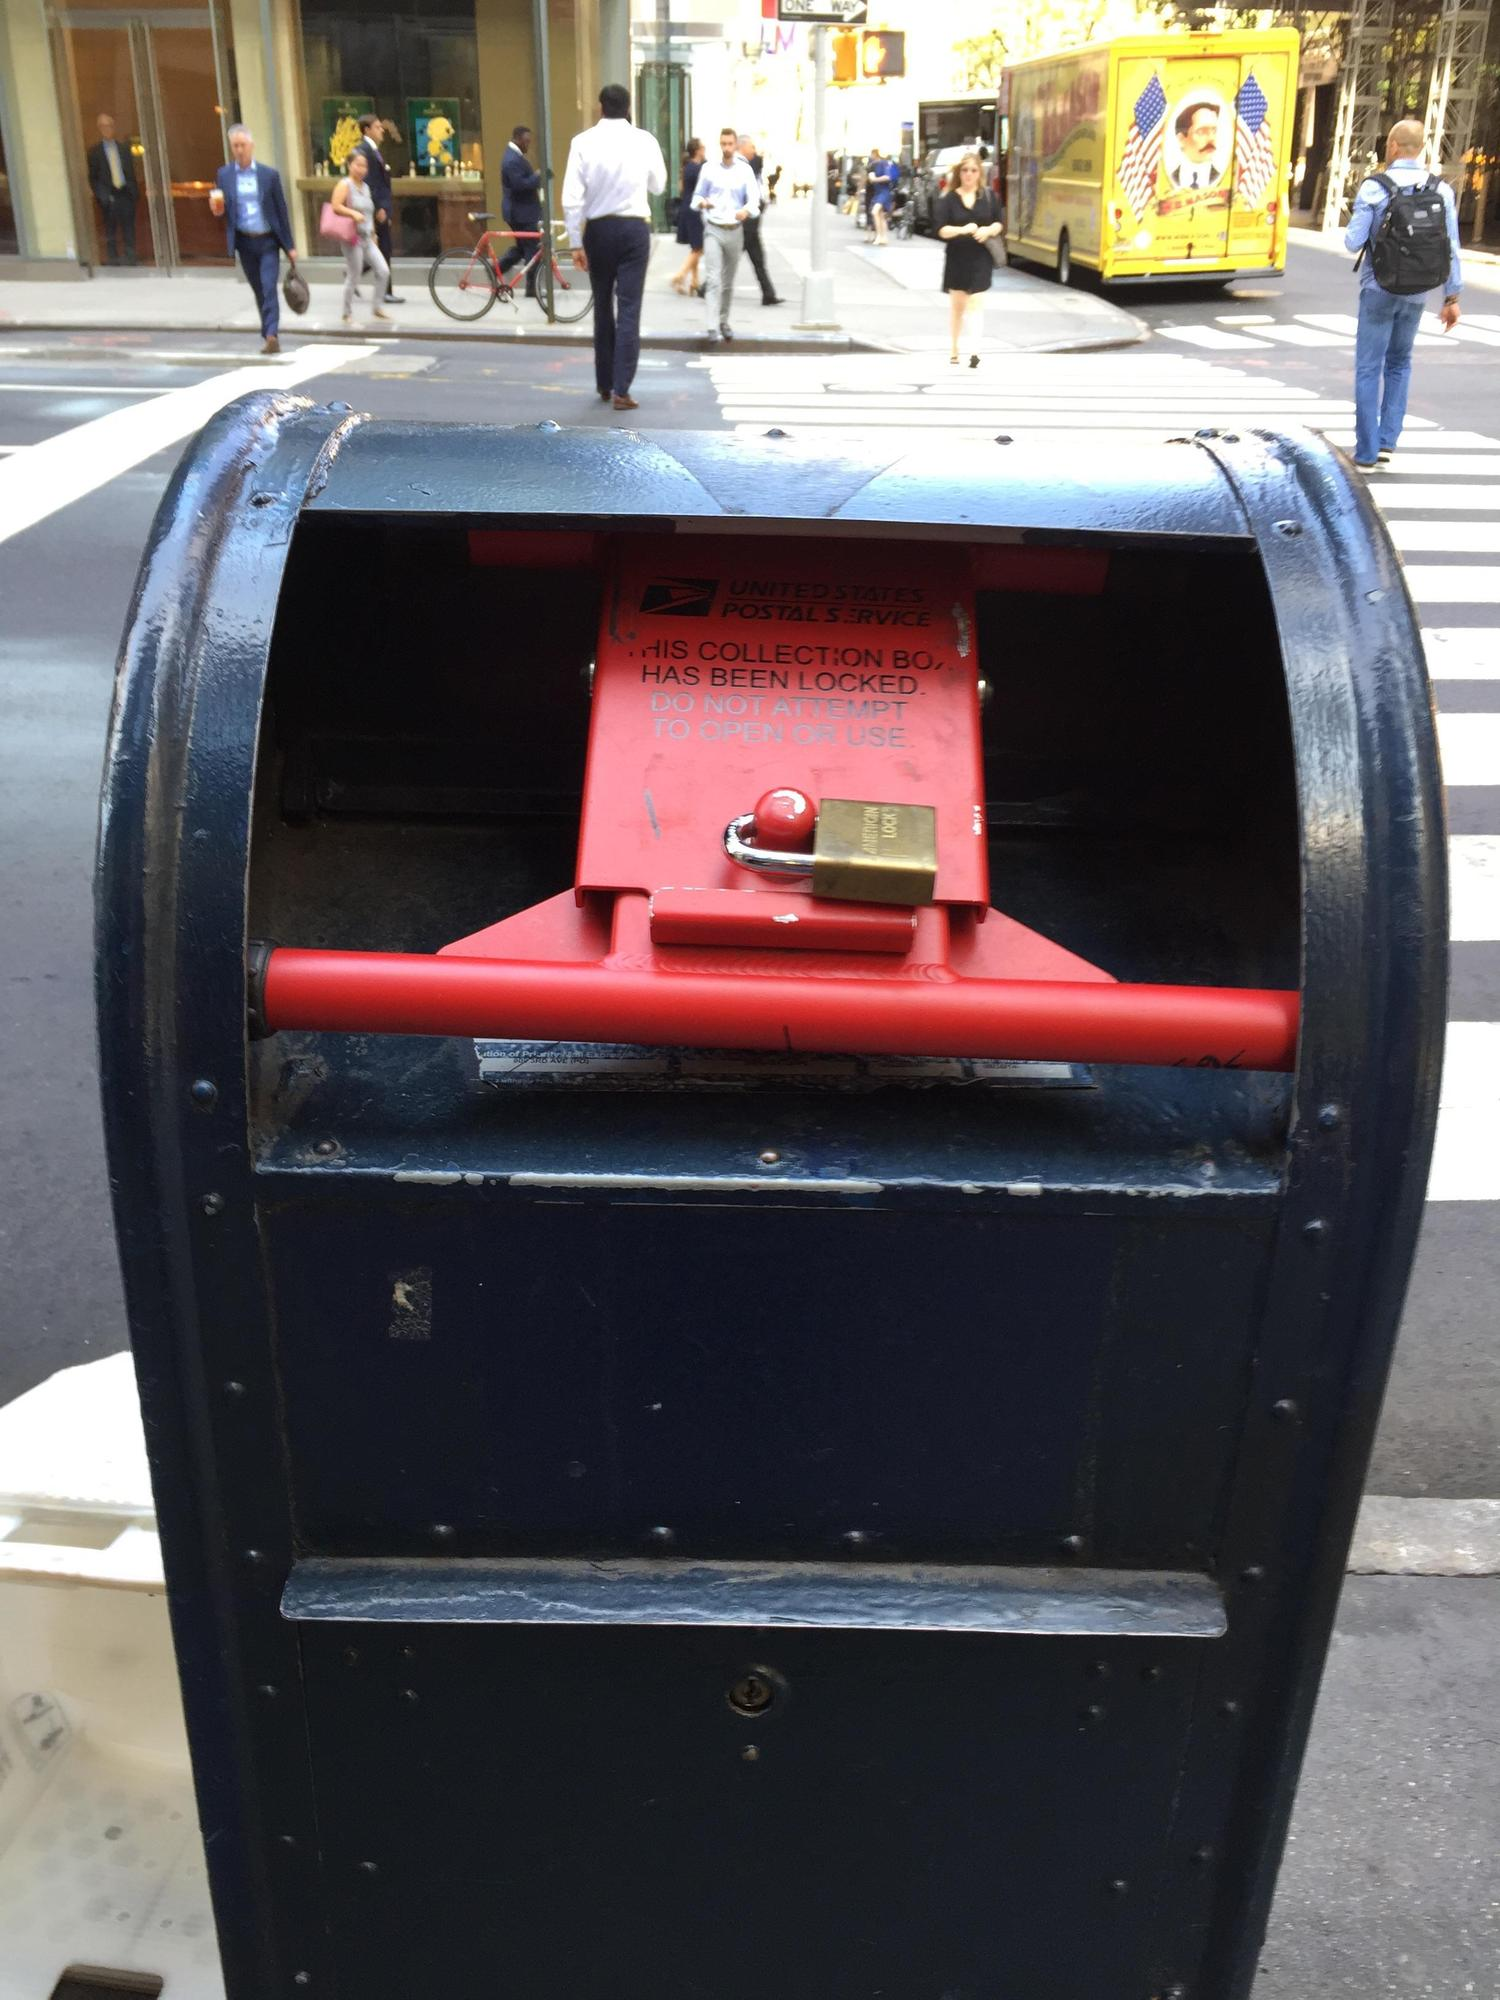 All the mail boxes near Trump Tower are locked